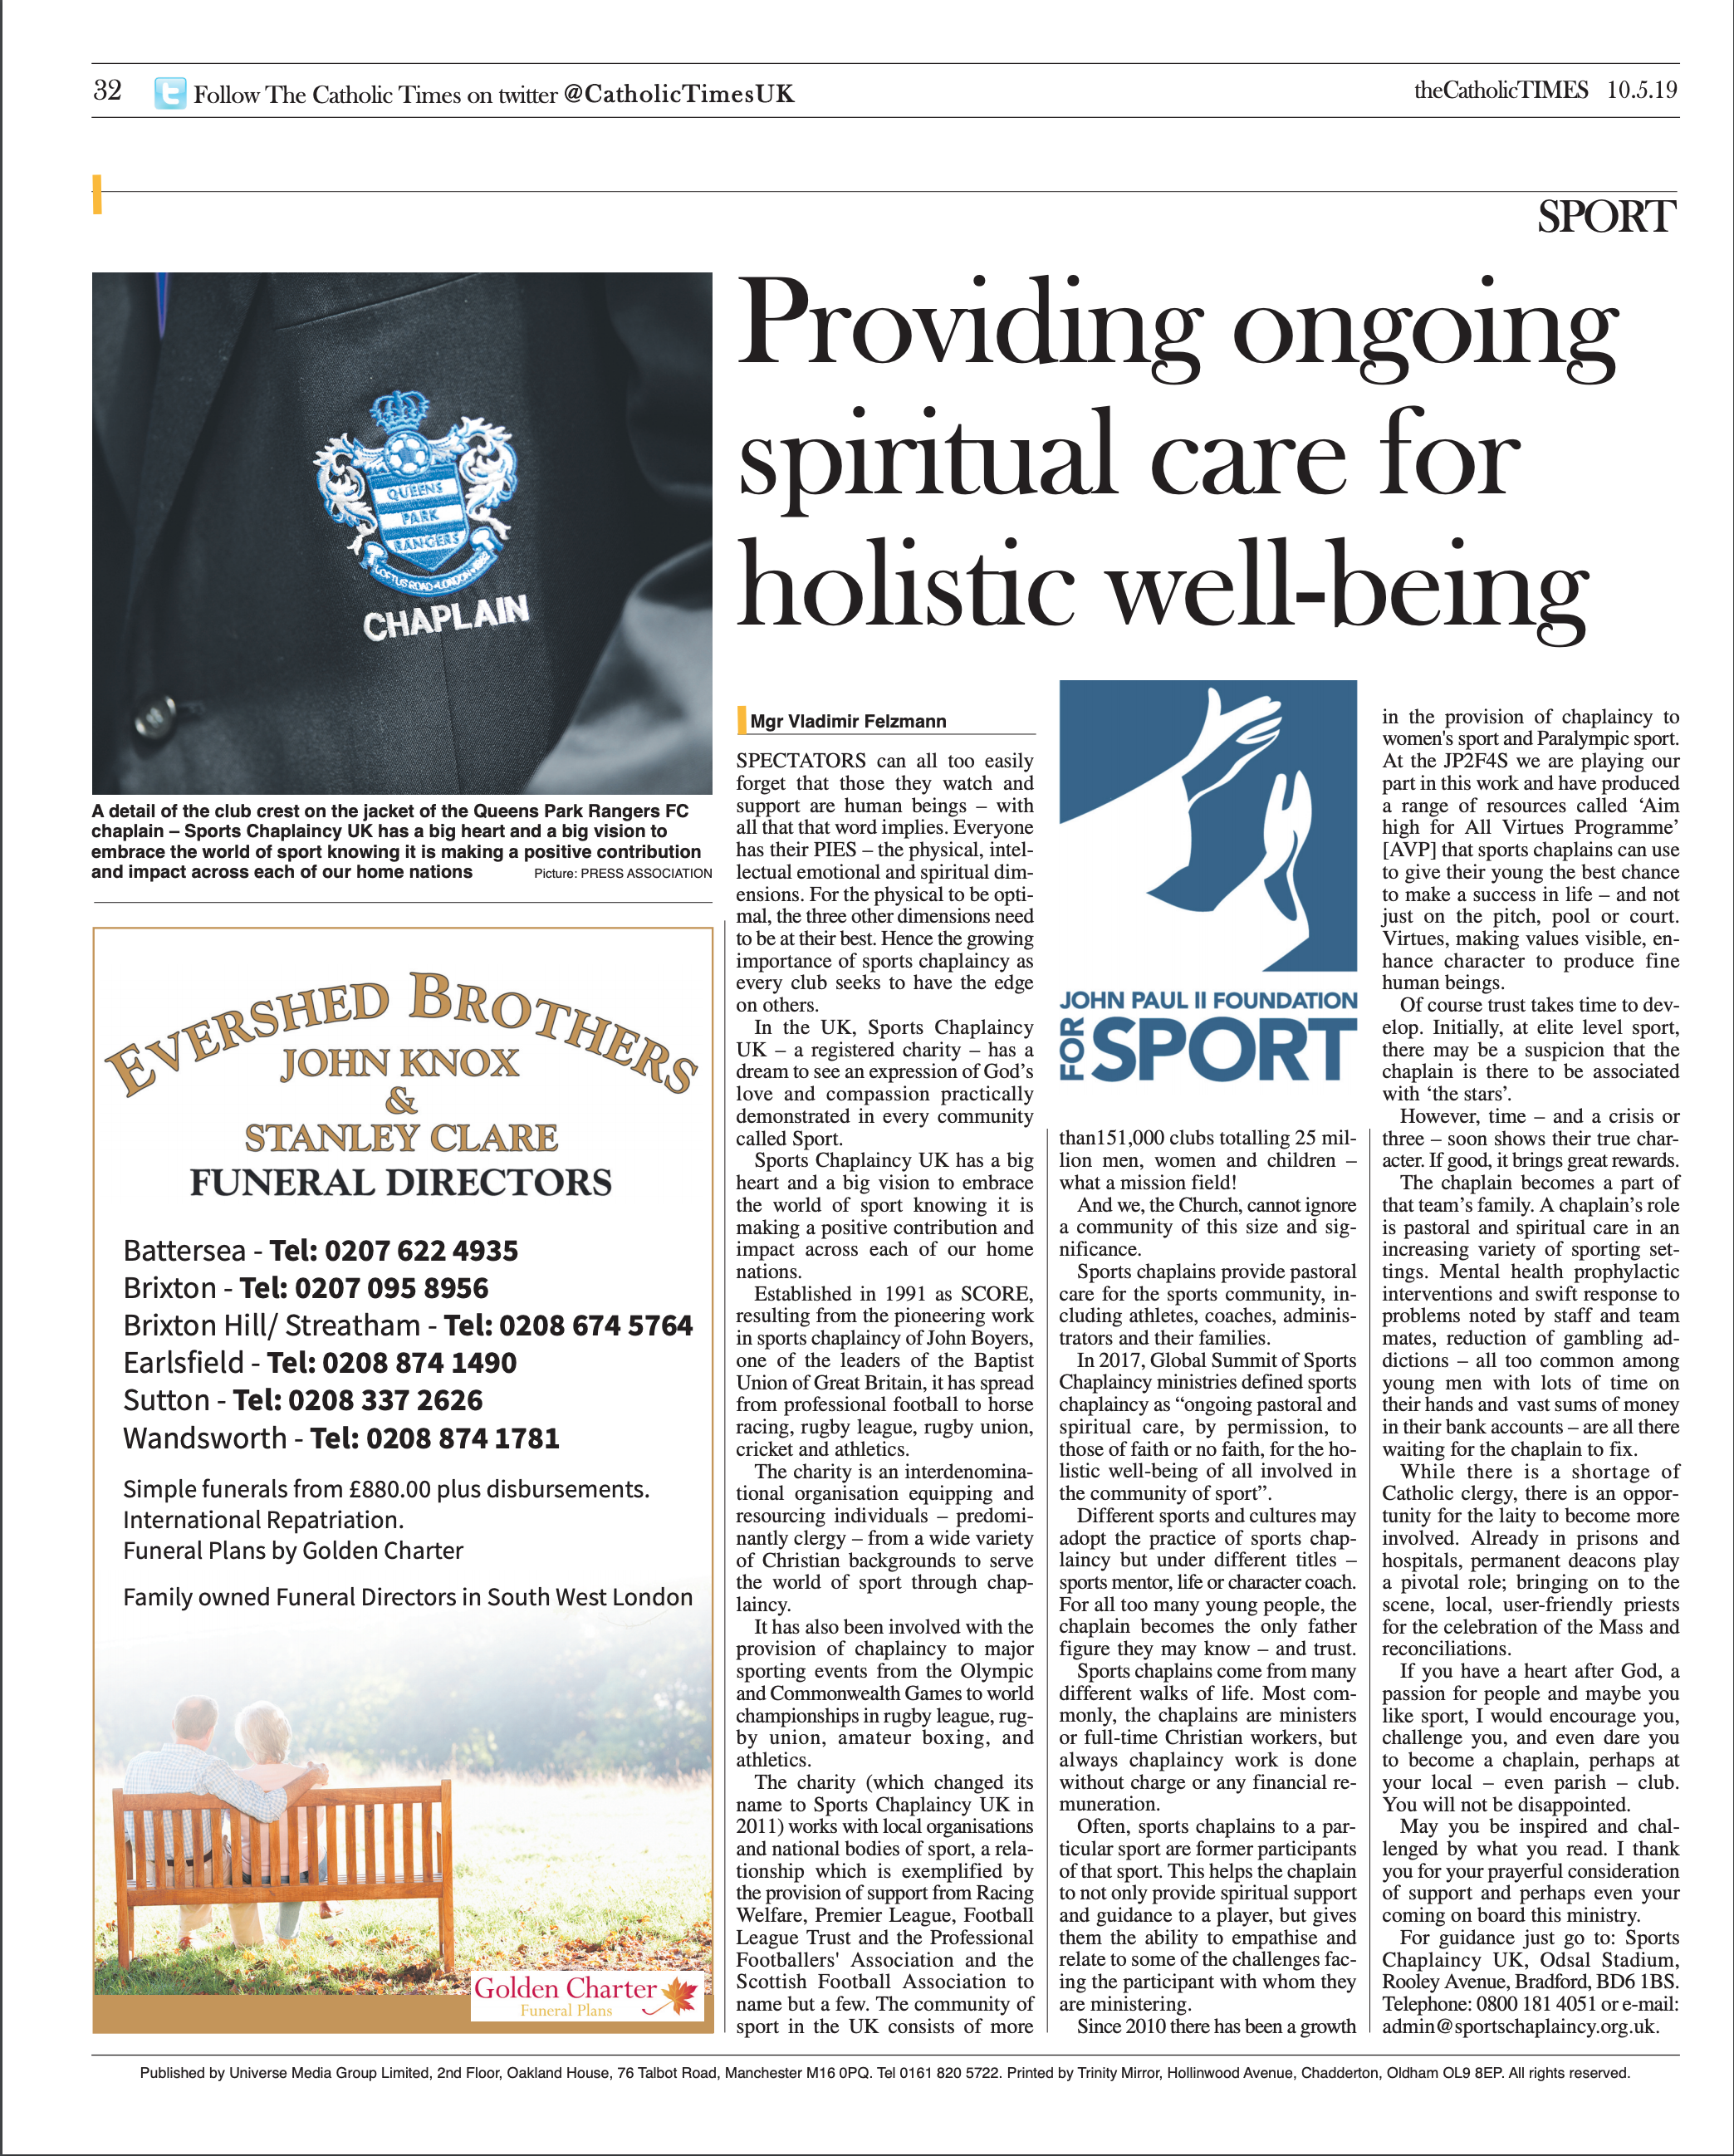 First published in theCatholicTImes on 10/05/2019.